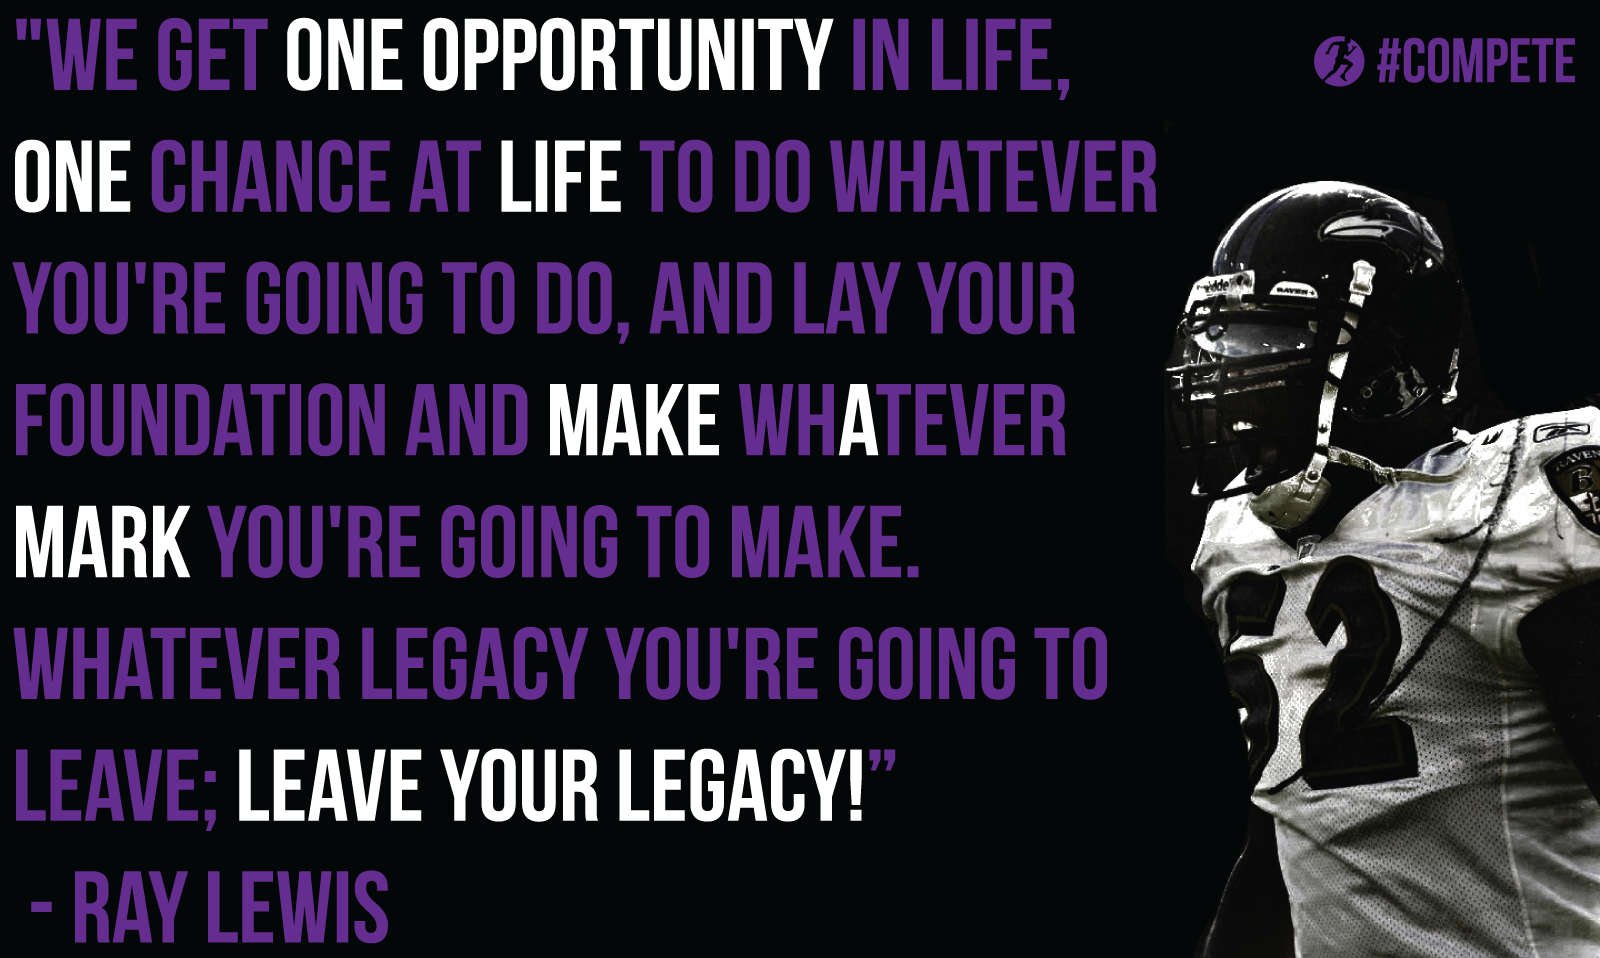 Ray Lewis Quotes About Effort: Quotes About Effort In Football (22 Quotes